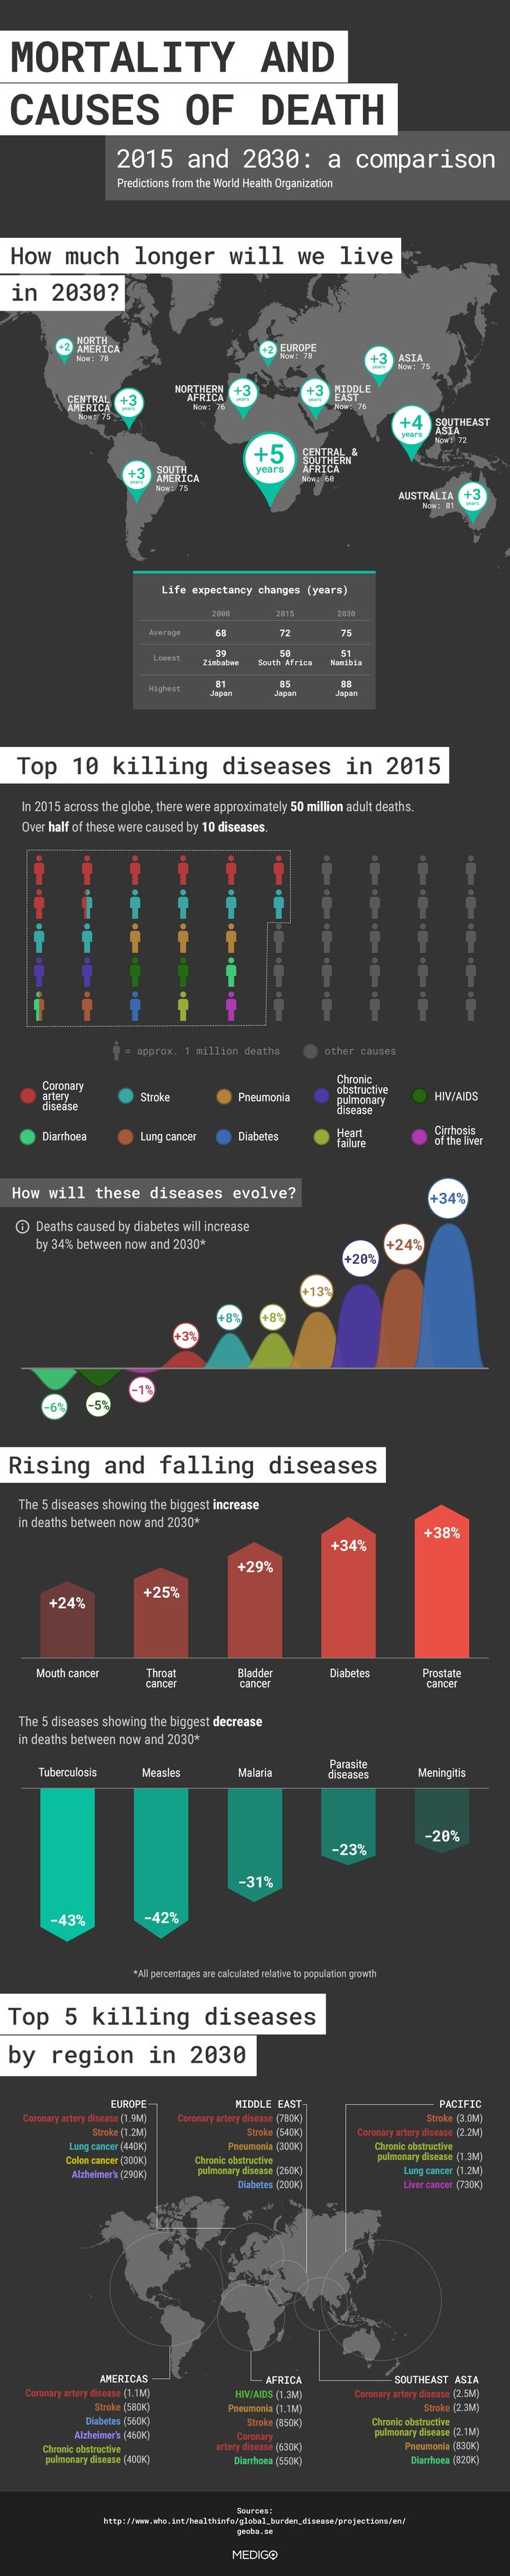 "Mortality And Causes Of Death (Infographic)  The World Health Organization released a report titled ""Projections of Mortality and Causes of Death, 2015 and 2030"" which summarized the deaths last year as well as makes predictions for 2030."